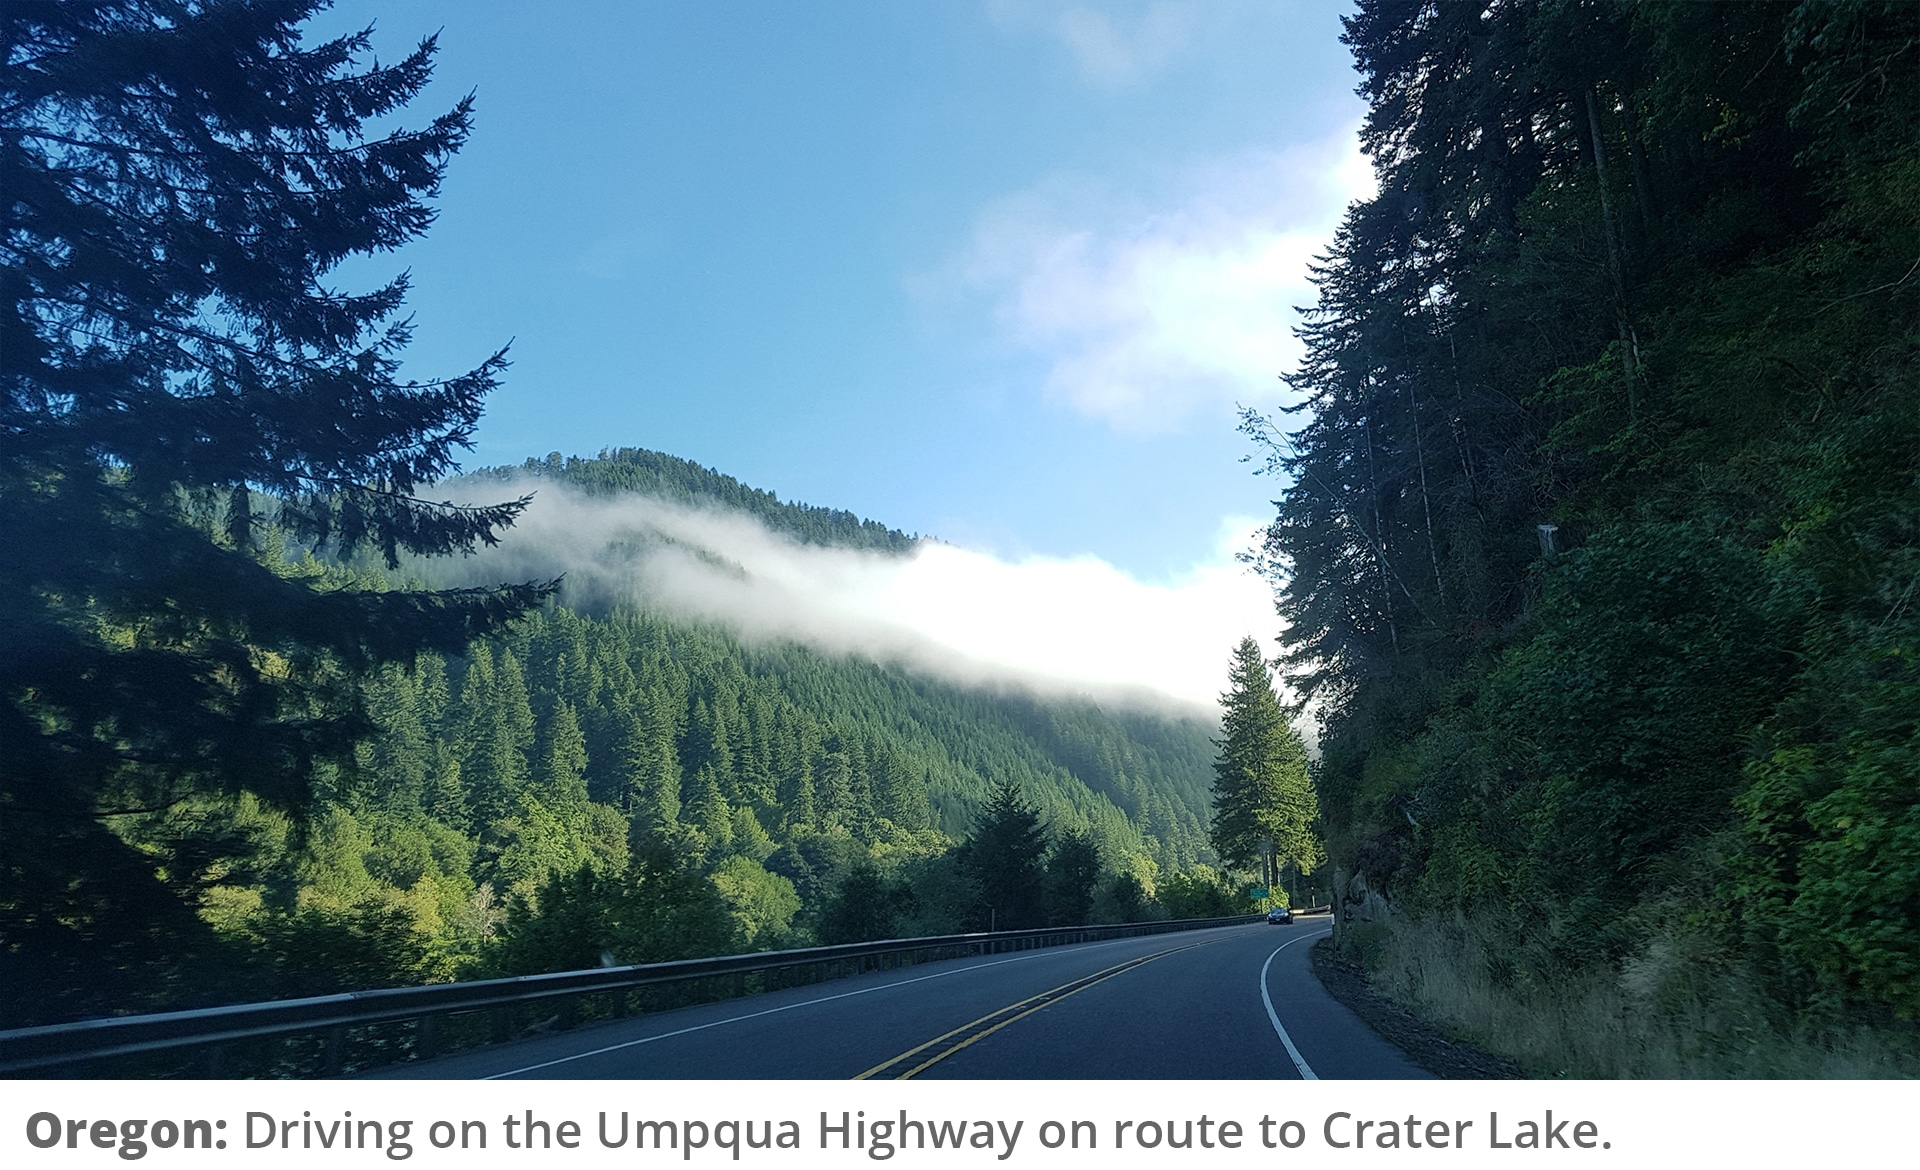 Honeymoon Road Trip - Driving on the Umpqua Highway